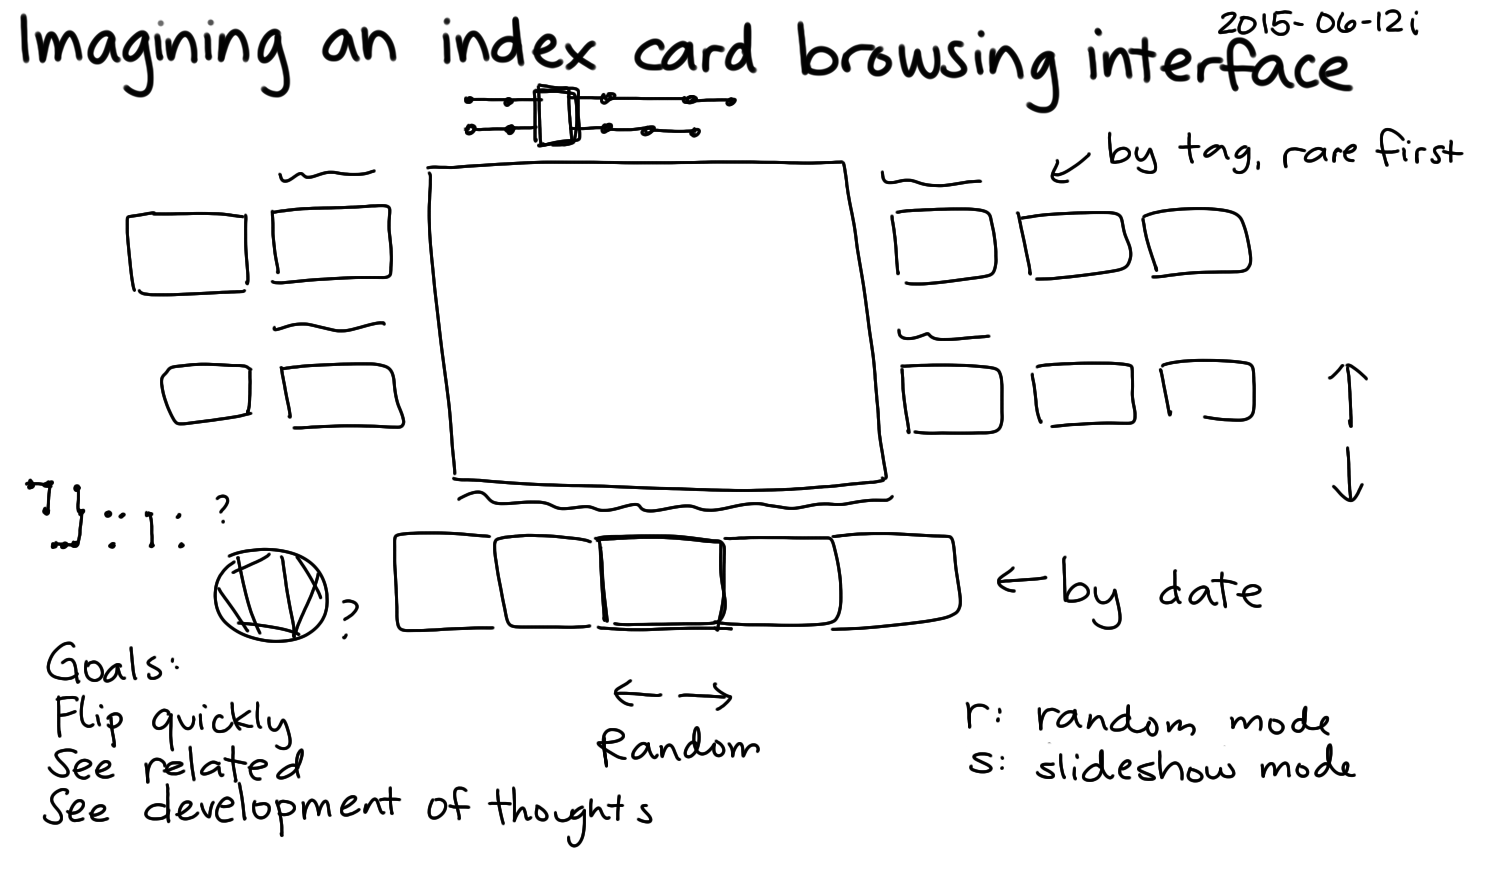 2015-06-12i Imagining an index card browsing interface -- index card #index-card #zettelkasten #browsing #visualization.png